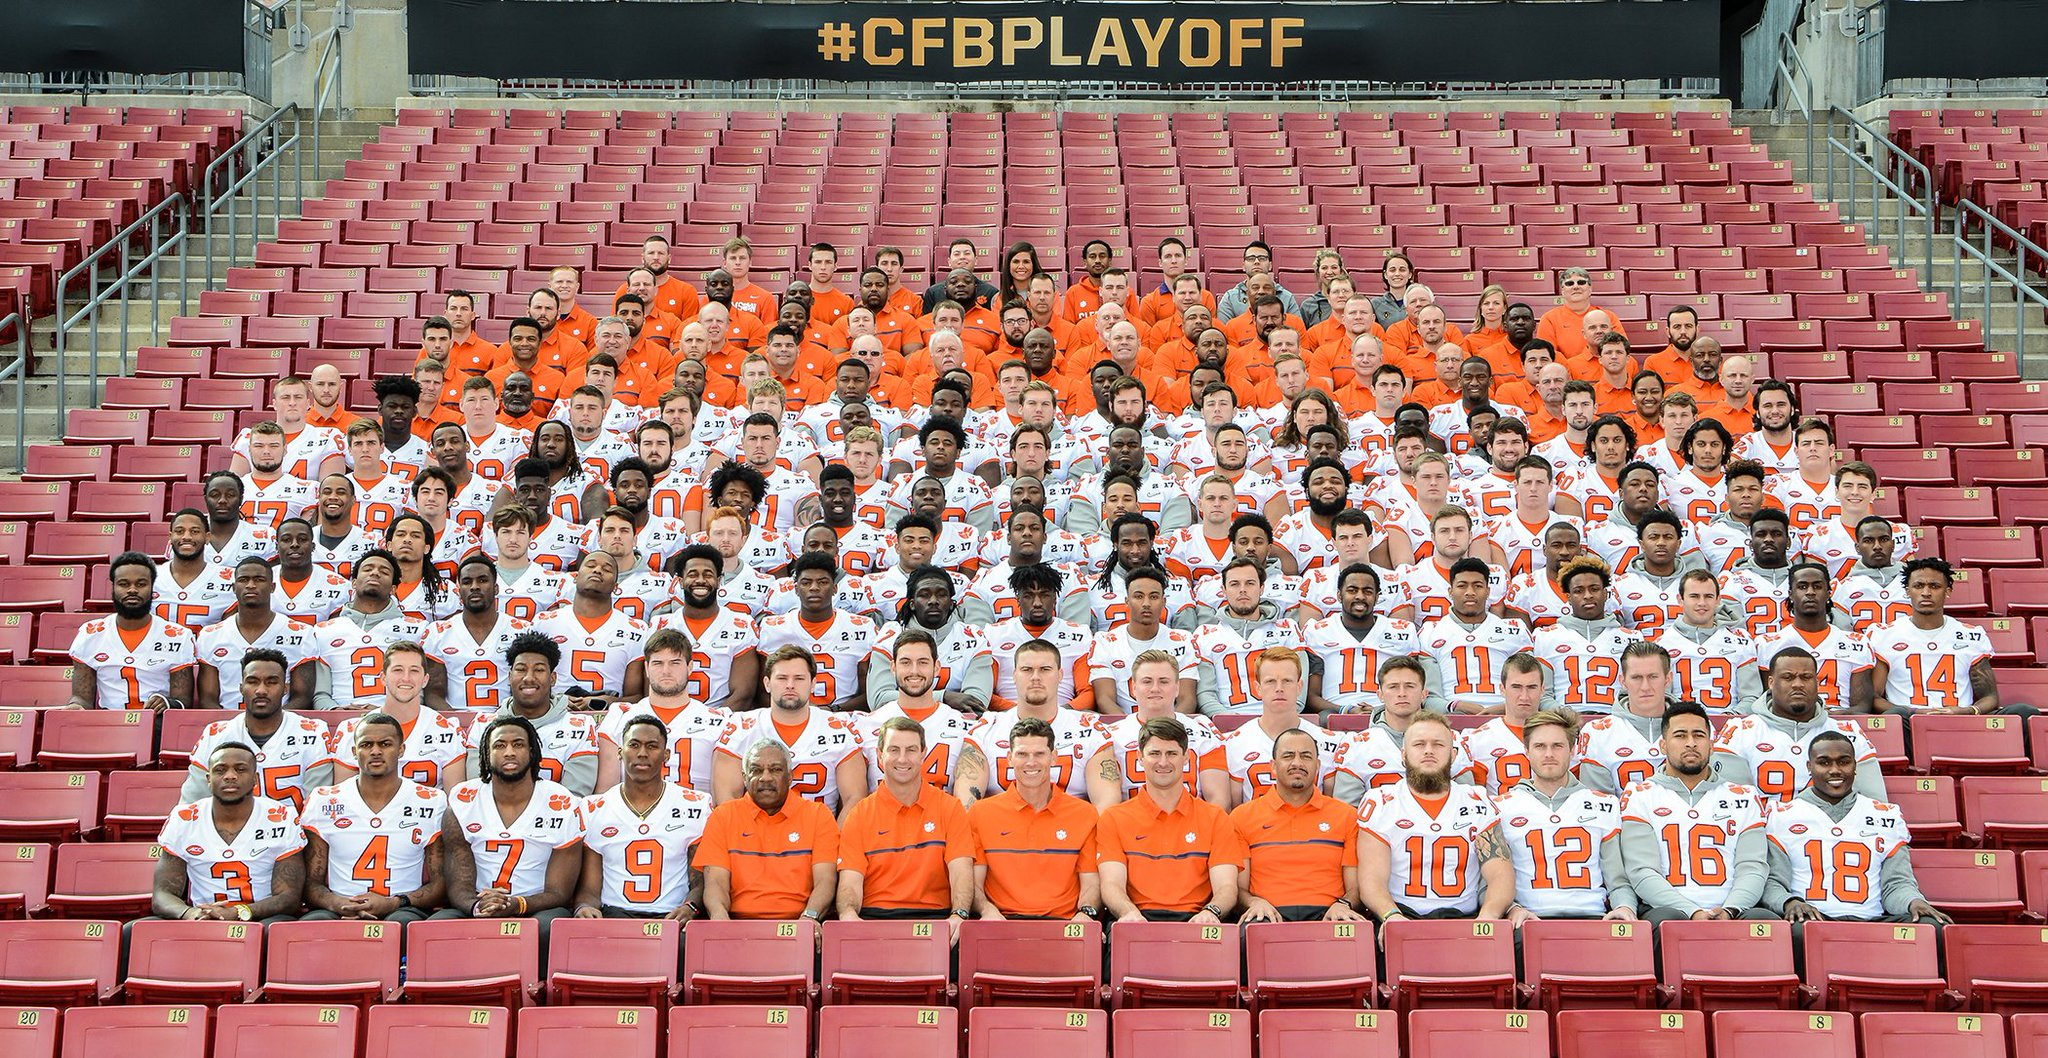 #ClemsonFamily #ALLIN #CFBPlayoff https://t.co/BkEfY7ithy